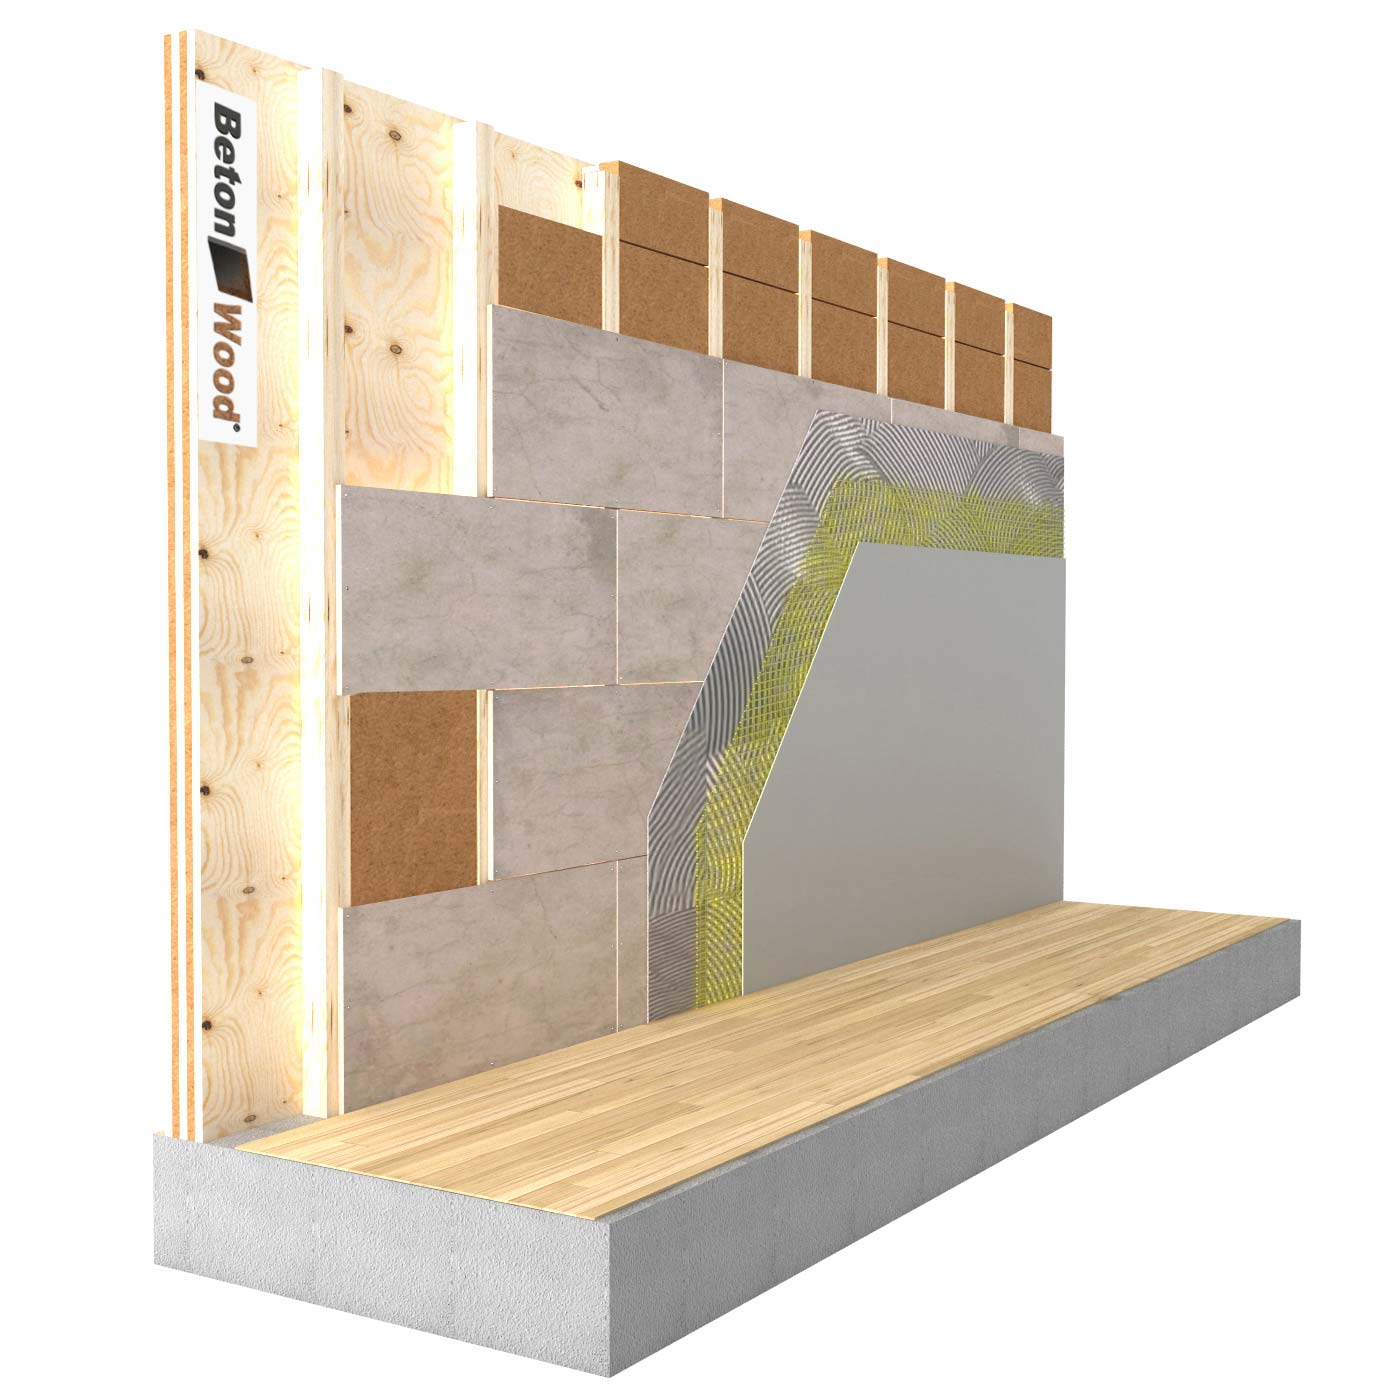 Internal insulation system in Protect Wood fiber and cement bonded particle board